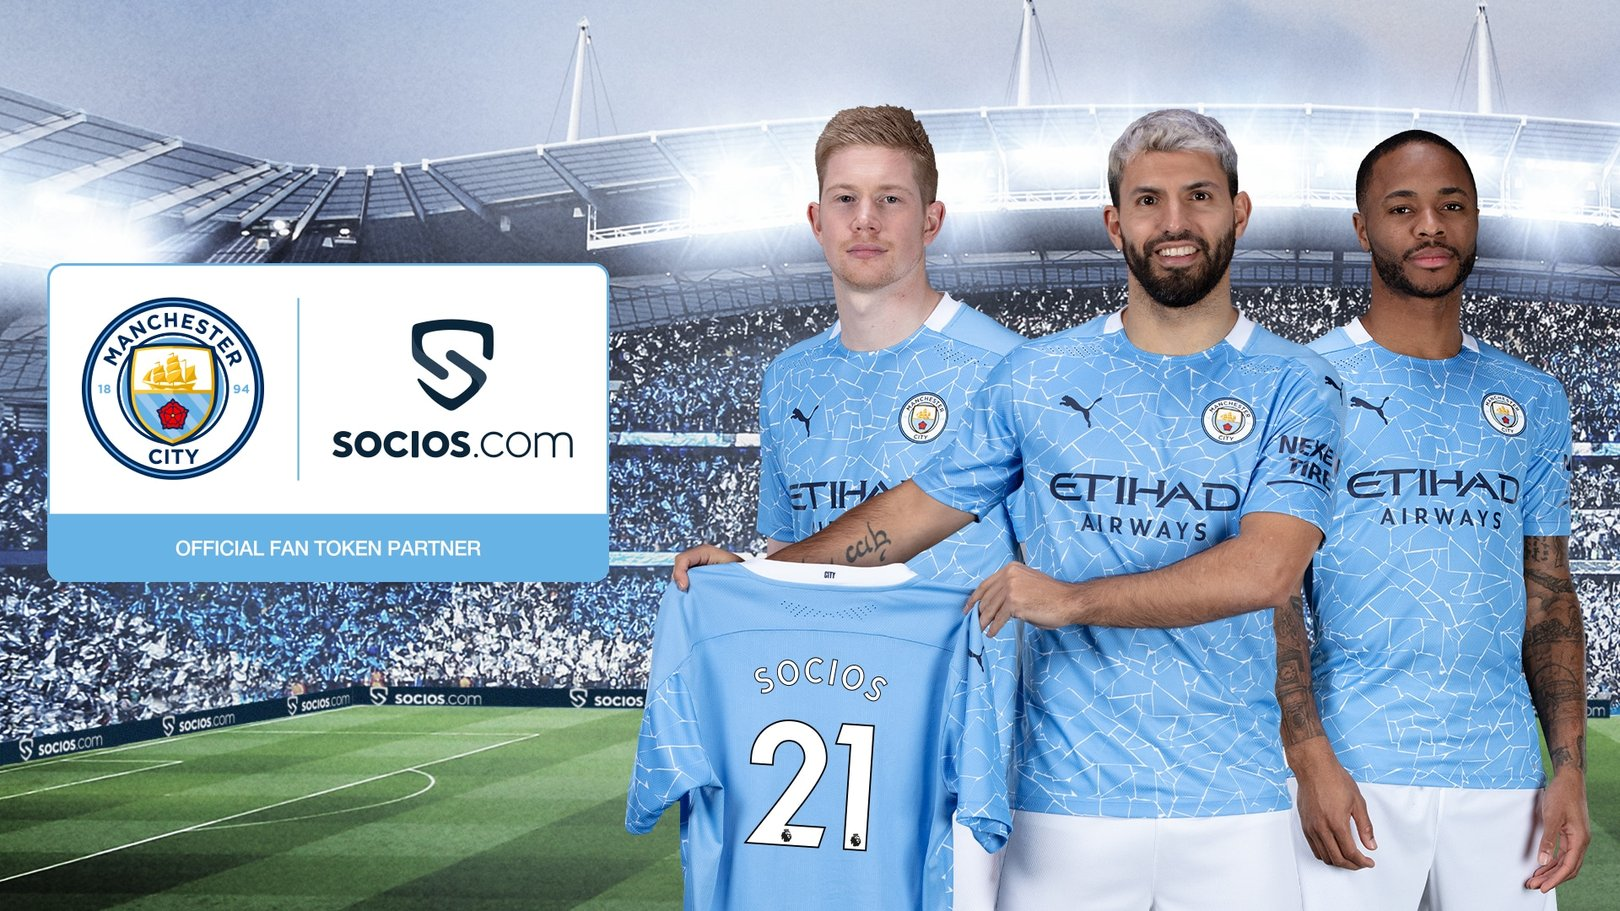 City and Socios.com launch Manchester City fan token